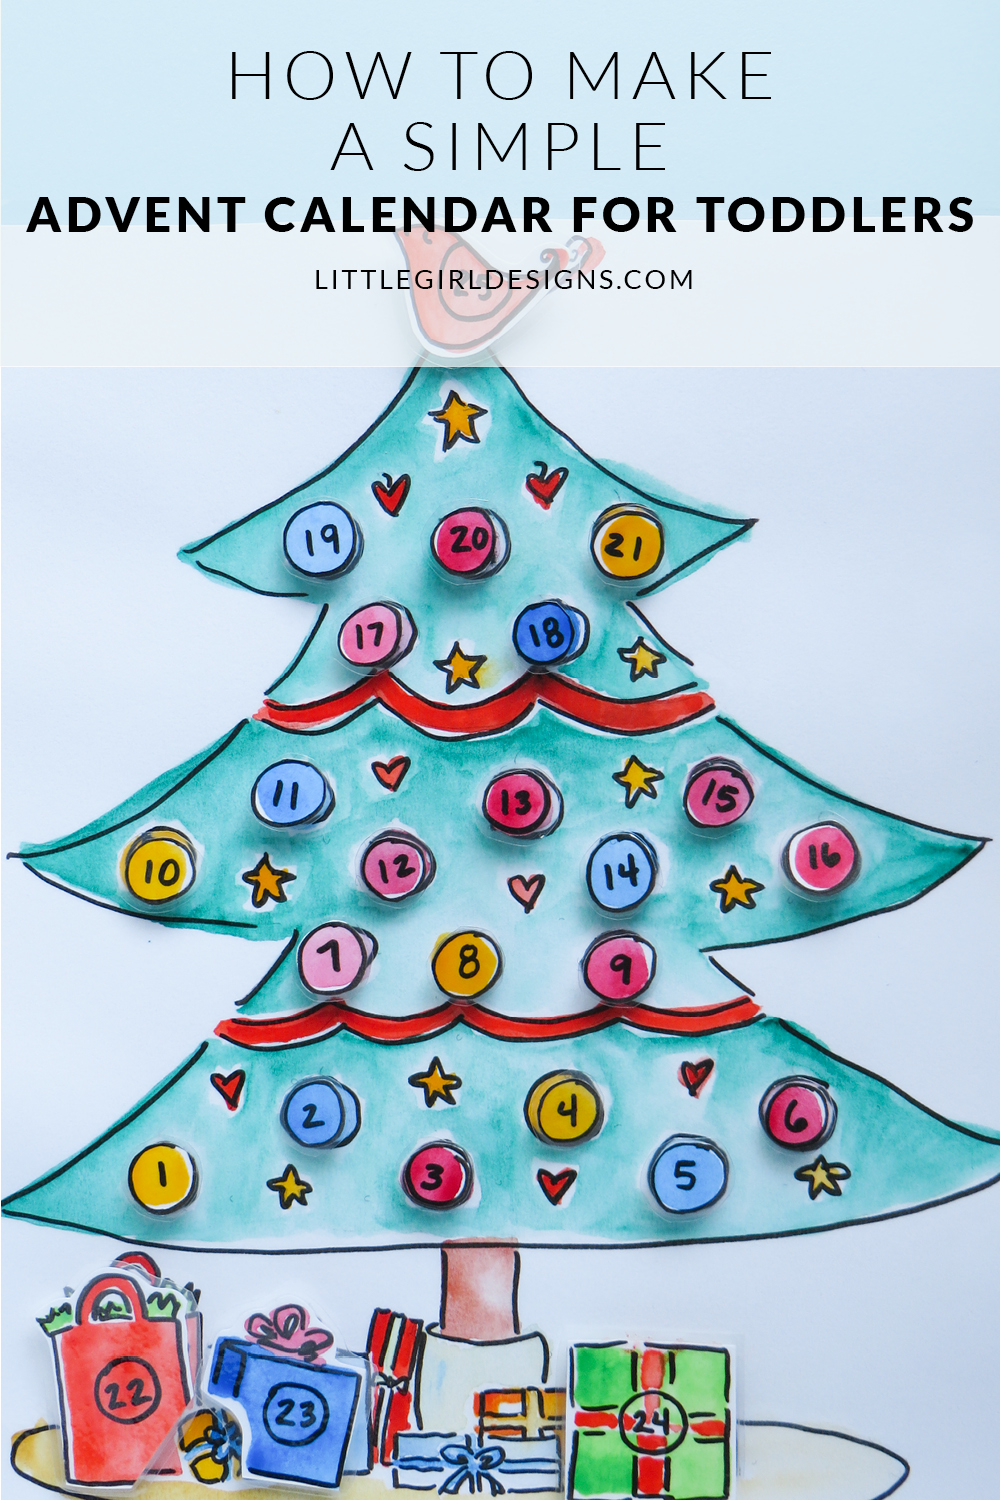 Advent Calendar Ideas Toddlers : How to make a simple advent calendar for toddlers jennie